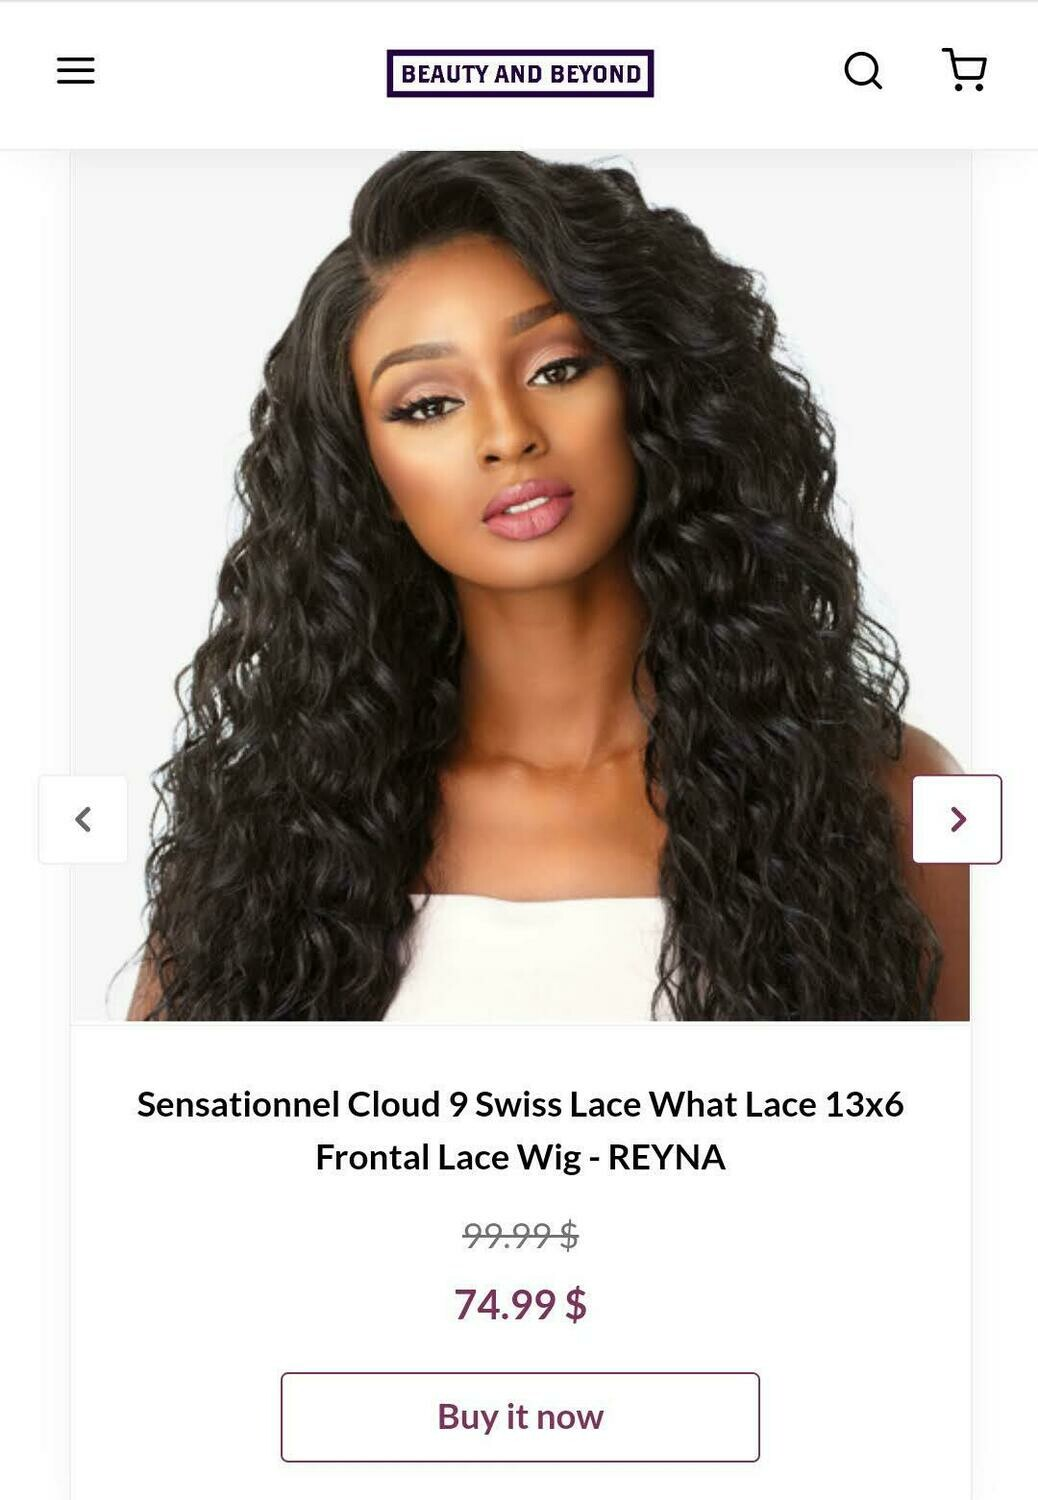 Sensational Cloud 9 Swiss Lace What Lace  13x6 Frontal Lace Wig- REYNA